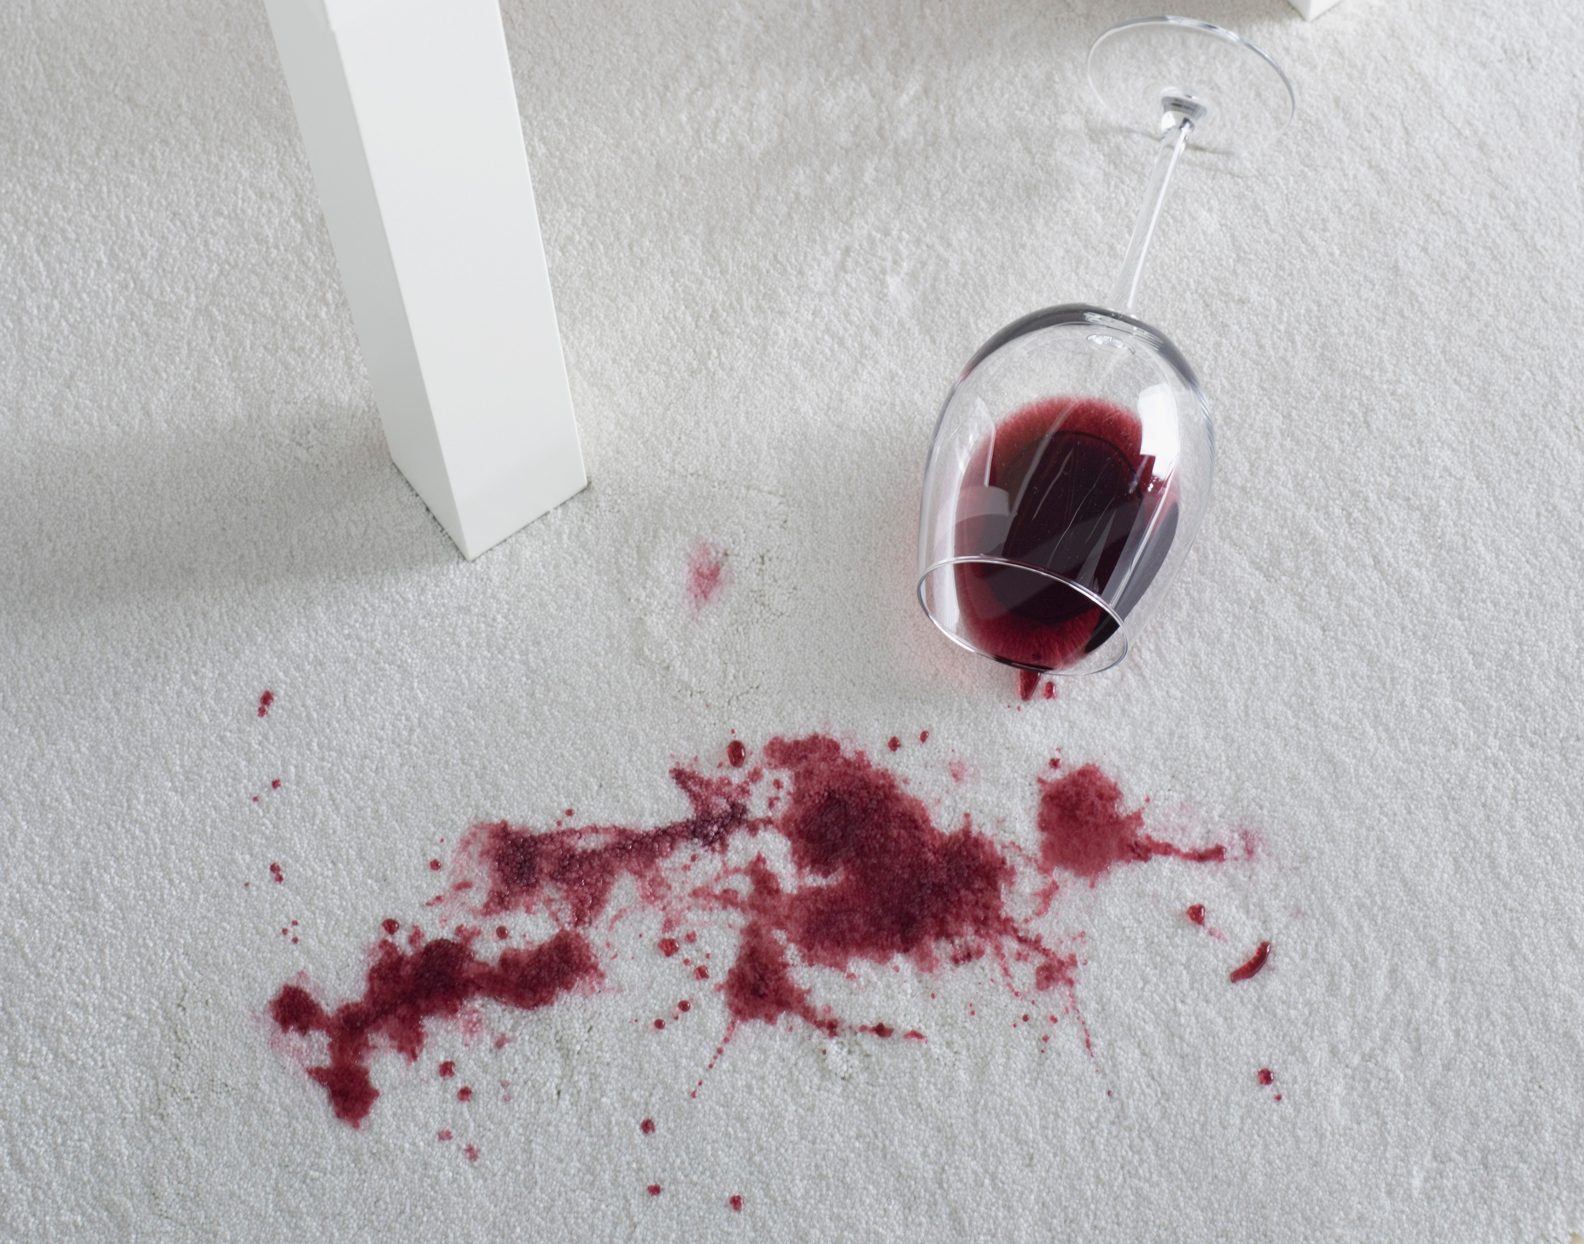 This Non-Toxic Cleaner Literally Makes Red Wine Stains Disappear Before Your Eyes